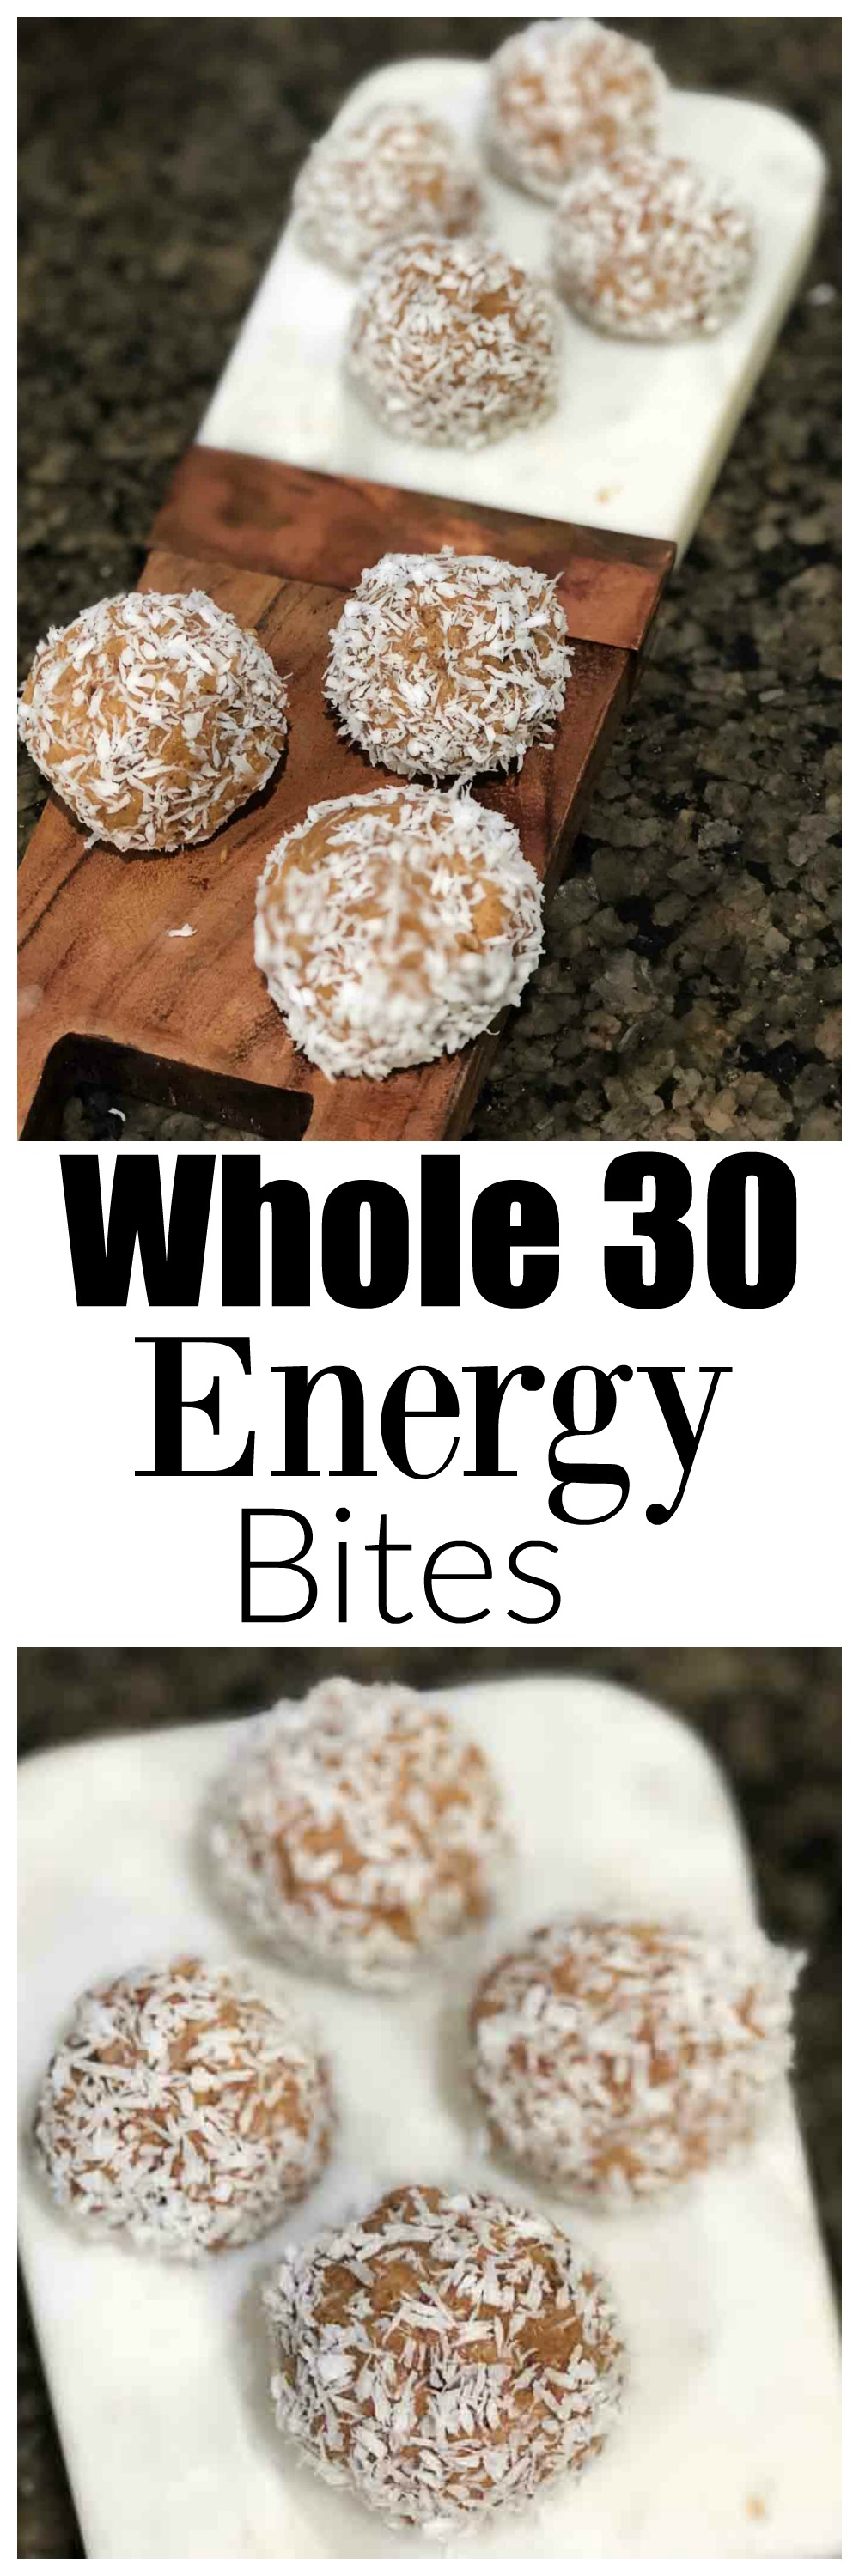 whole30 energy bites - Whole30 Snacks: Delicious Energy Bites by Atlanta fitness blogger Happily Hughes